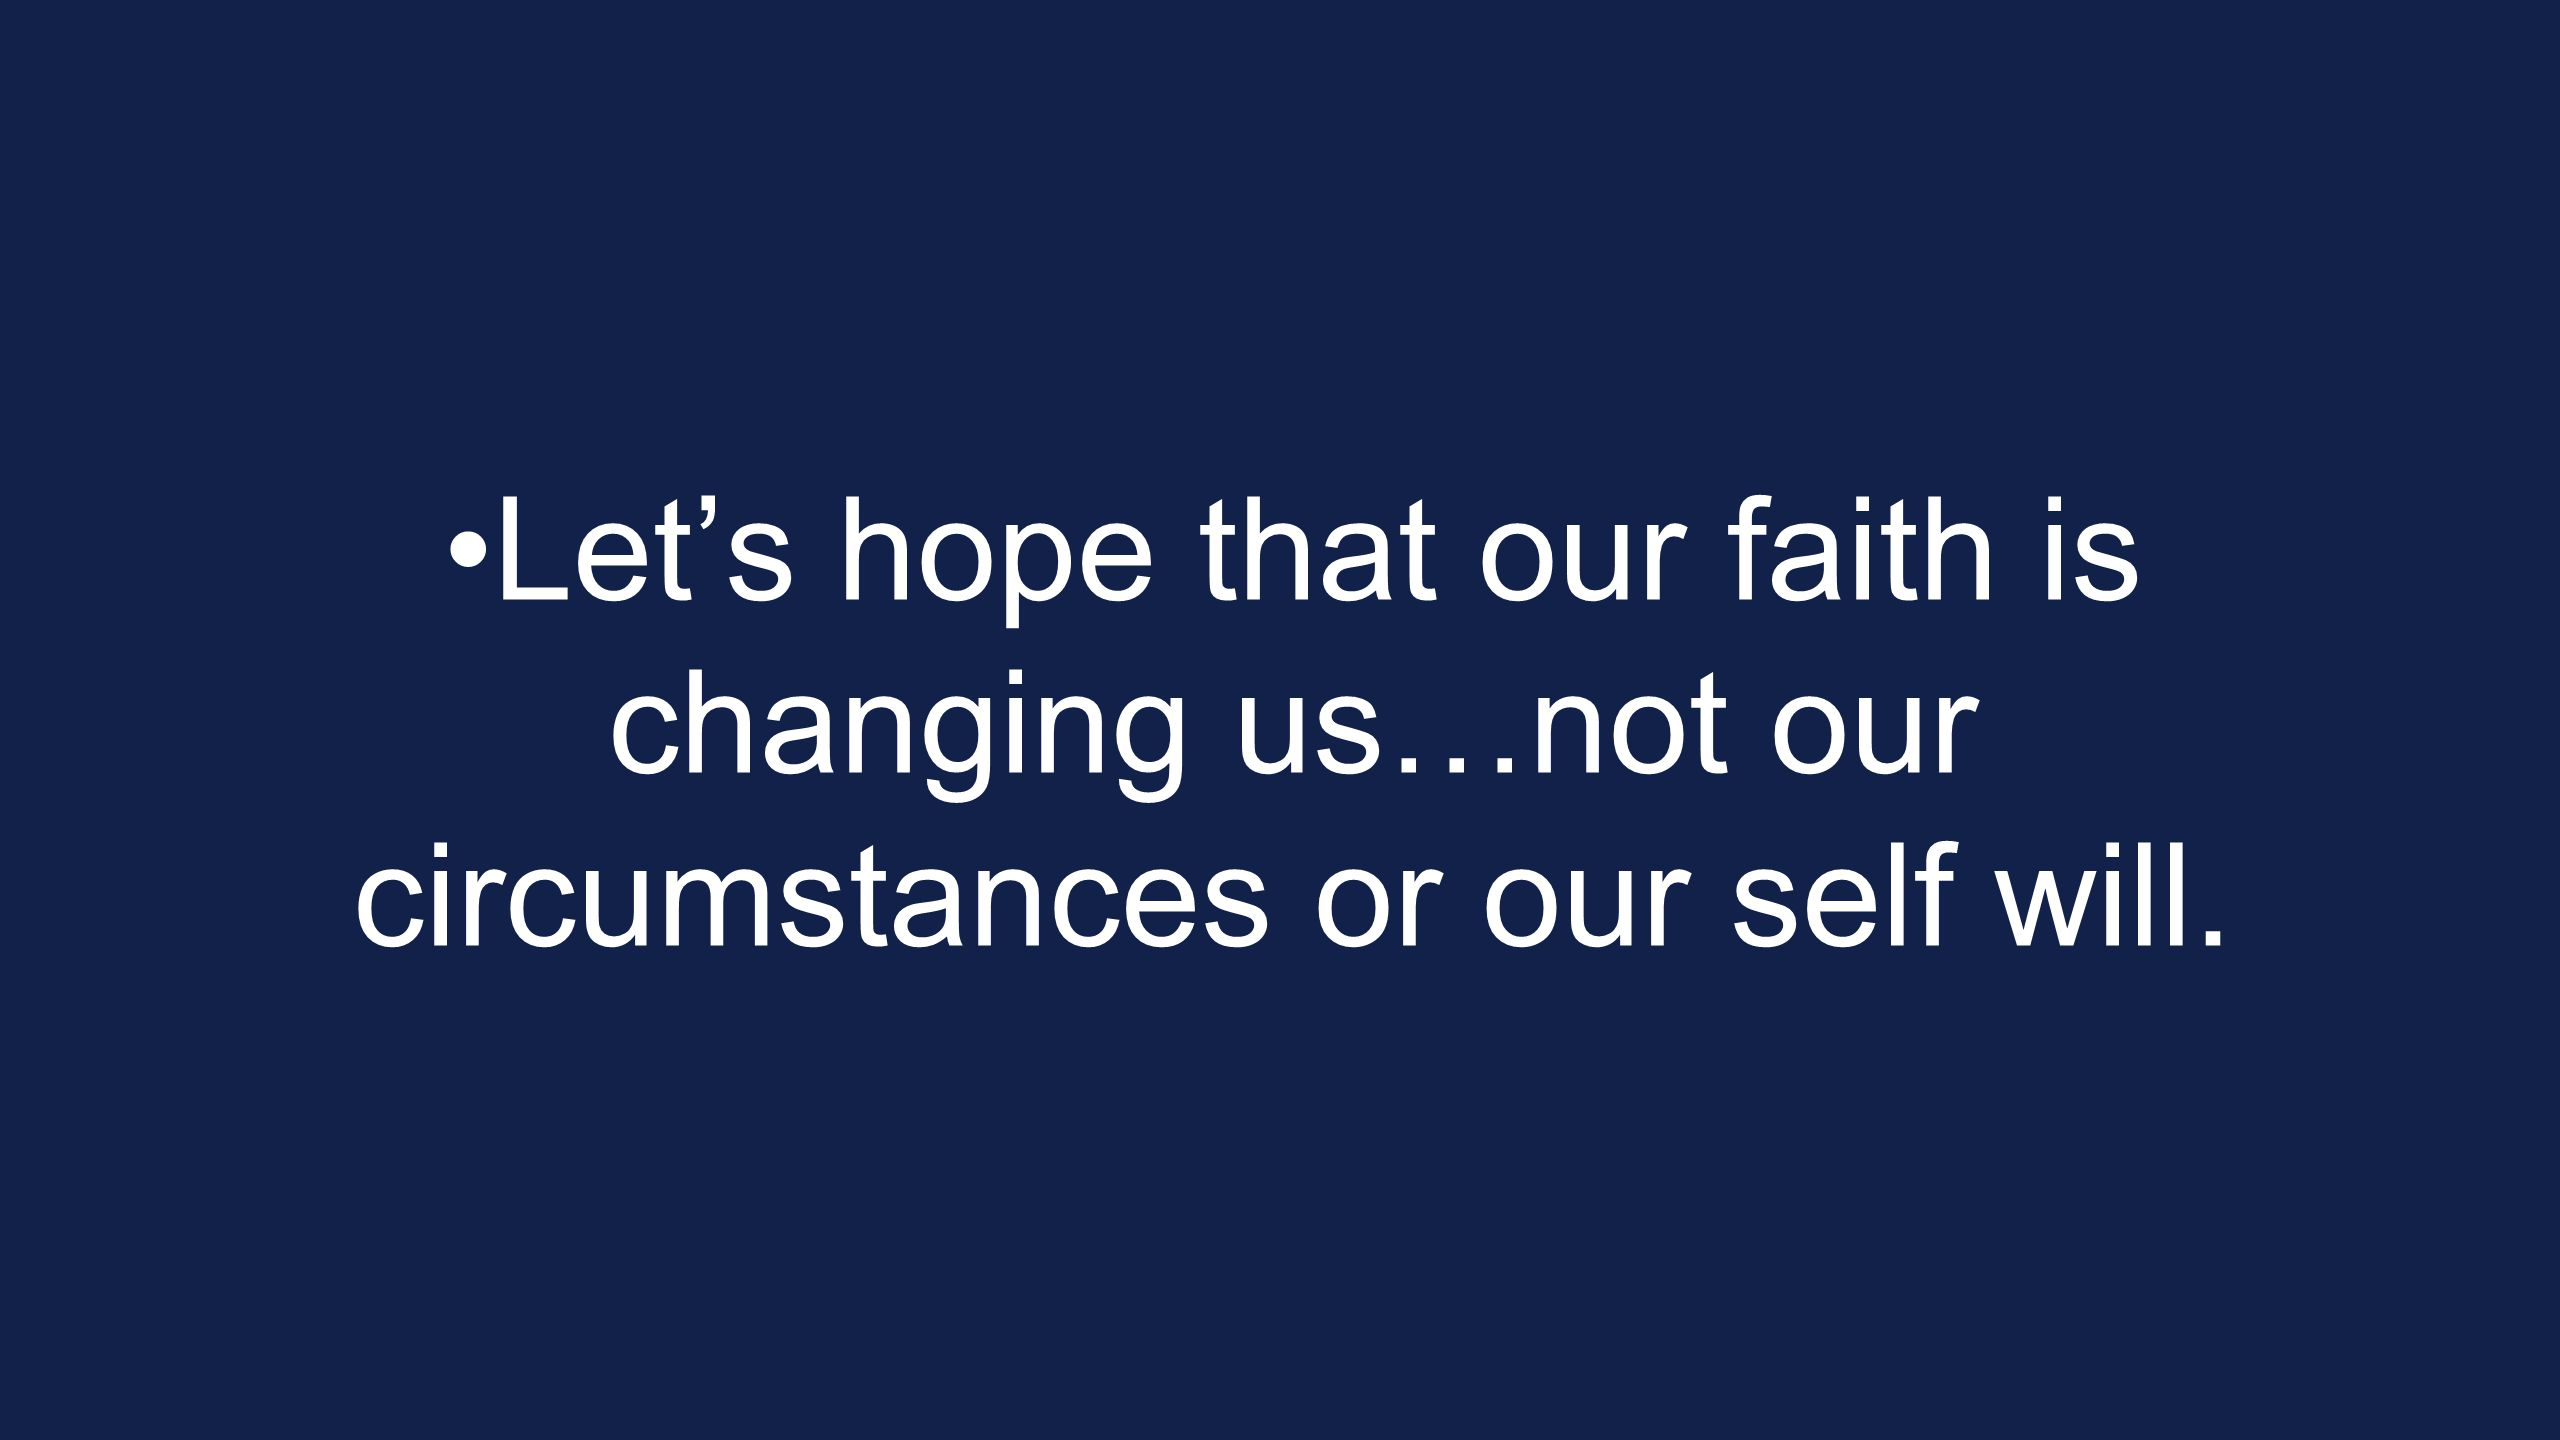 Let's hope that our faith is changing us…not our circumstances or our self will.